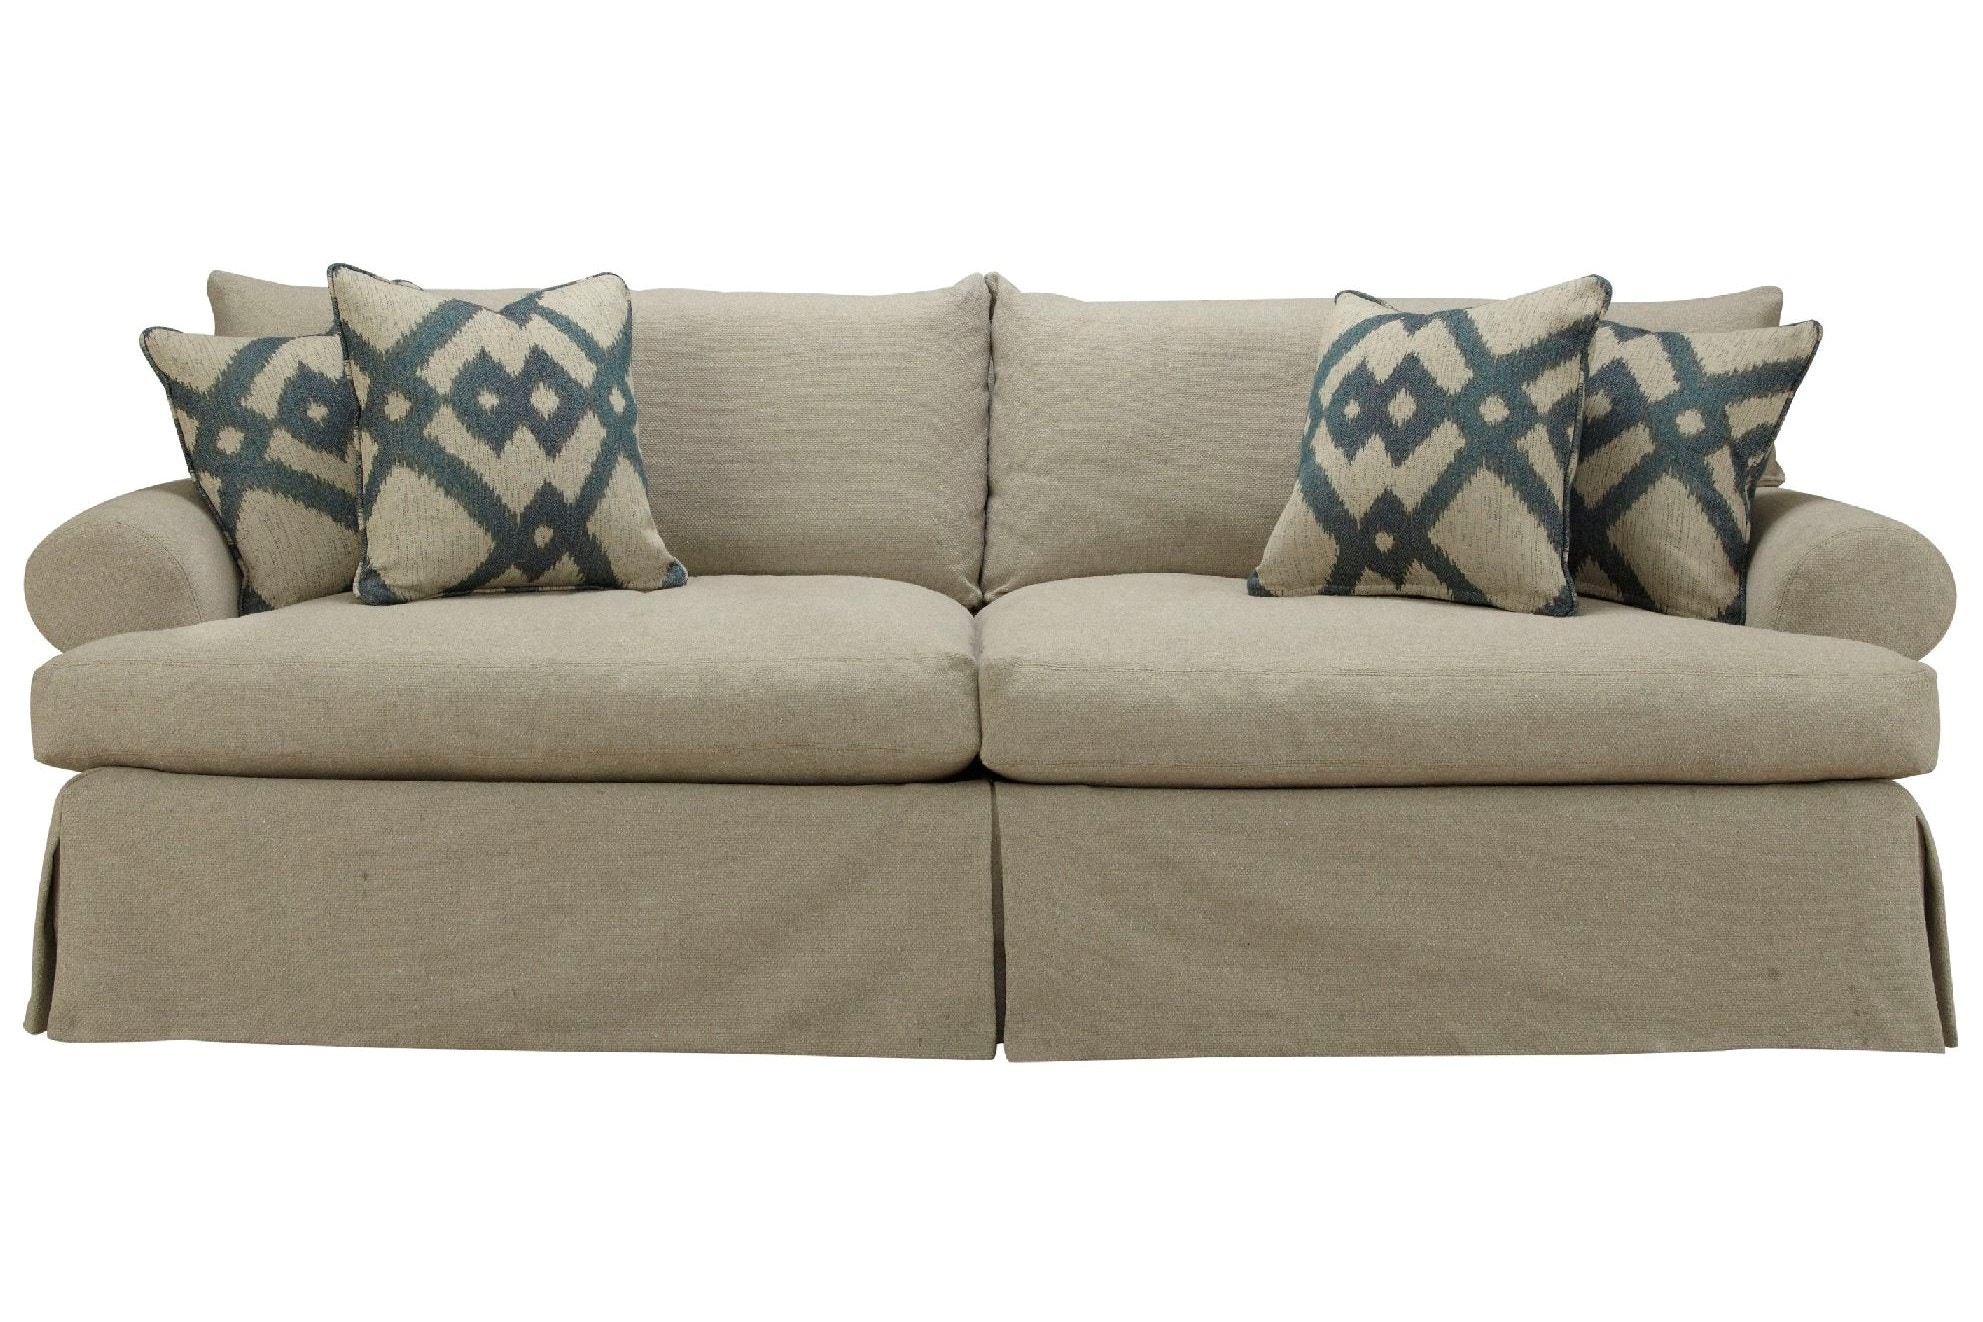 Bishop Sofa WES25031 At Walter E. Smithe Furniture And Design